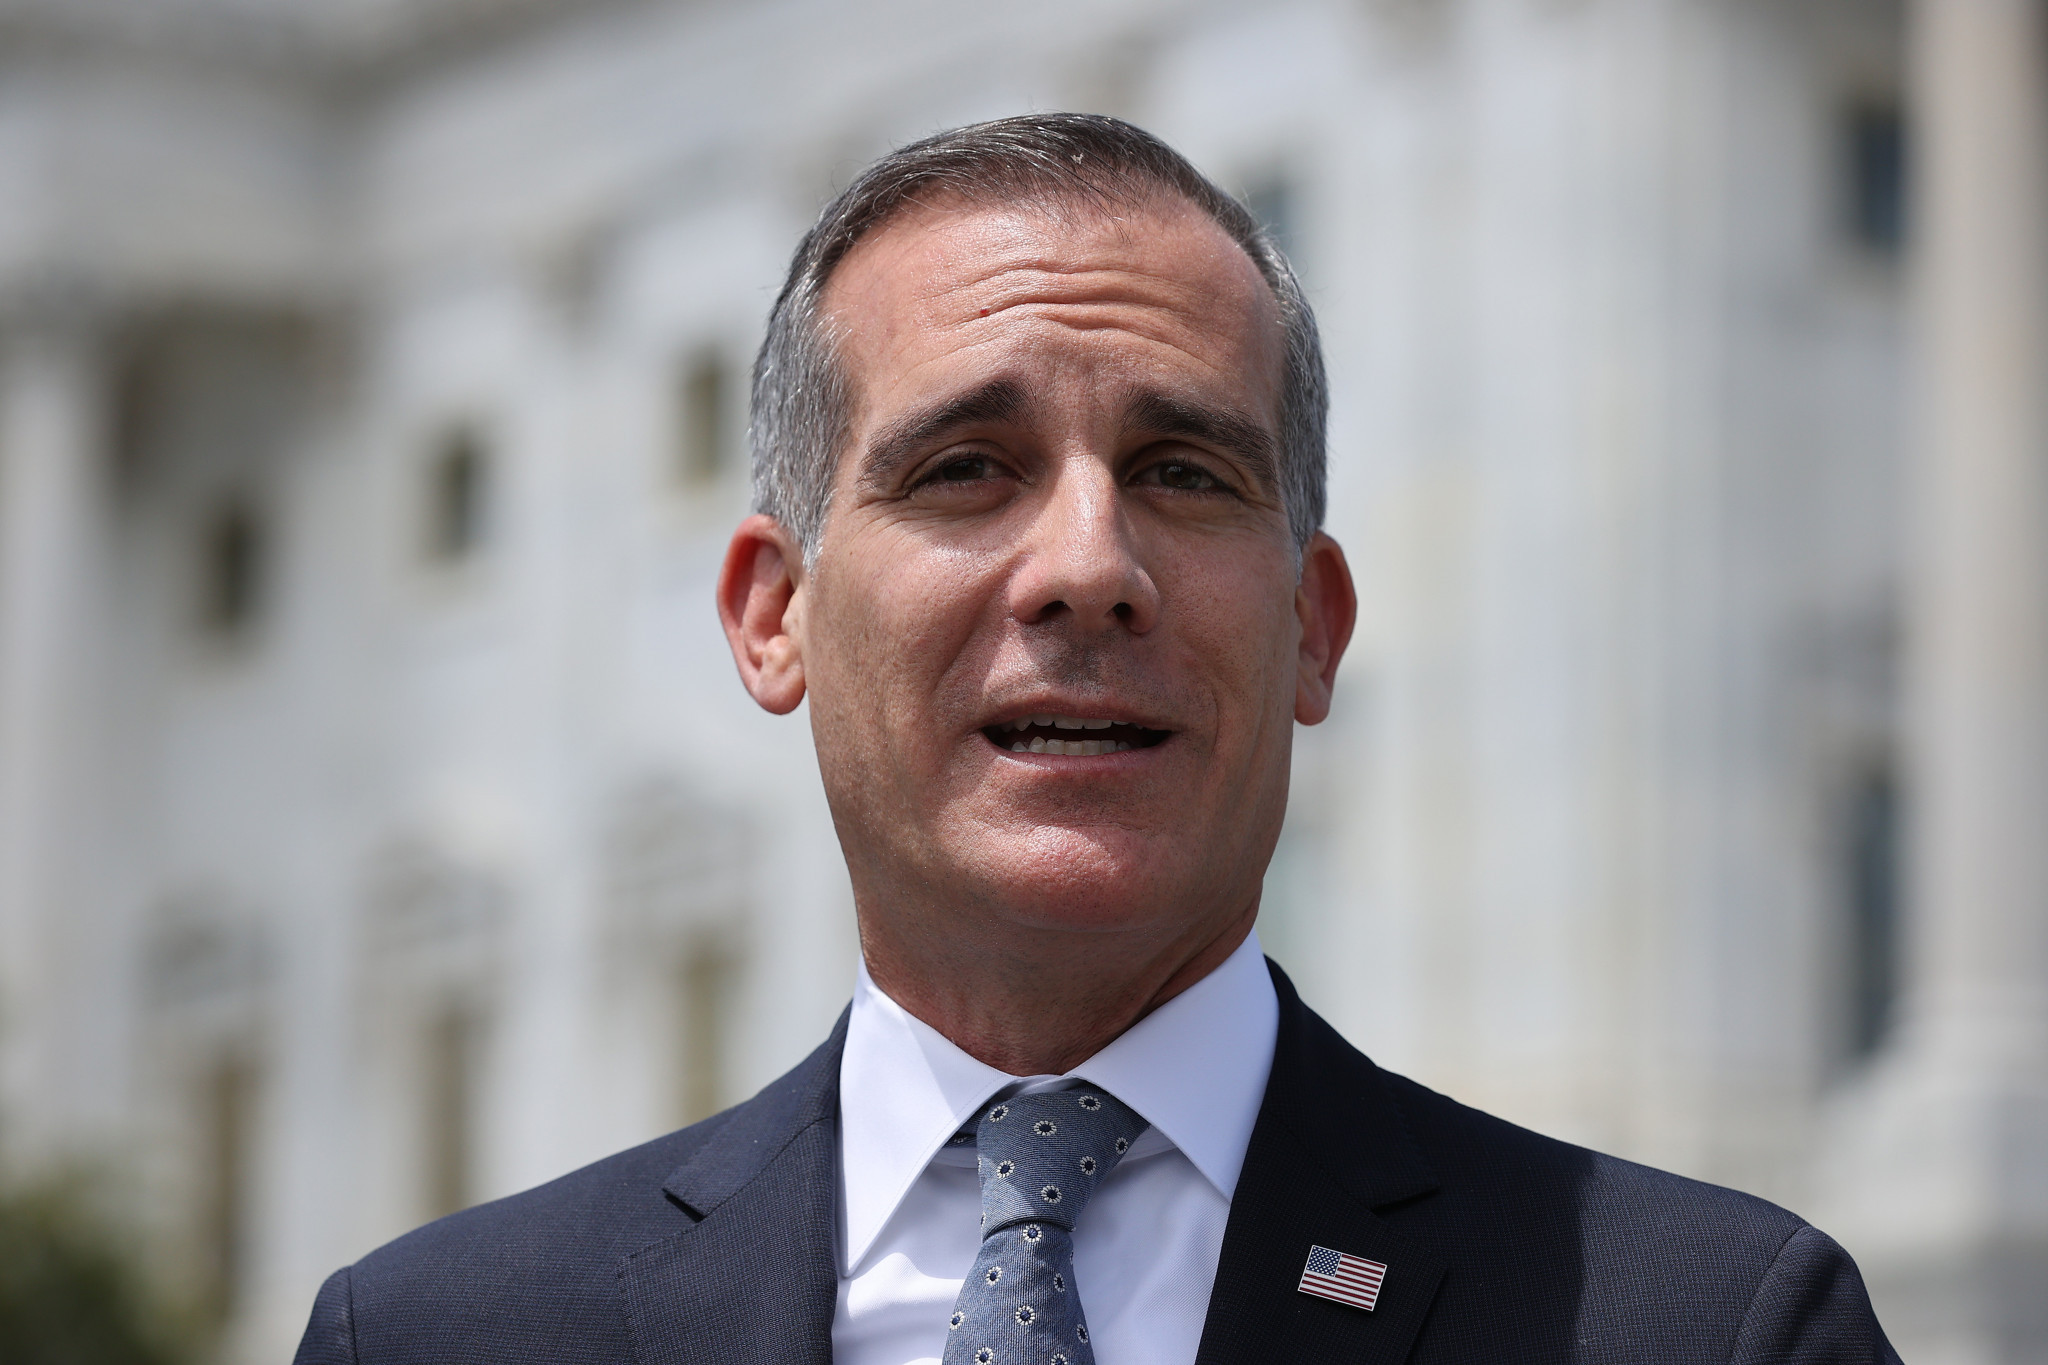 Los Angeles Mayor set to become United States' new Ambassador in India